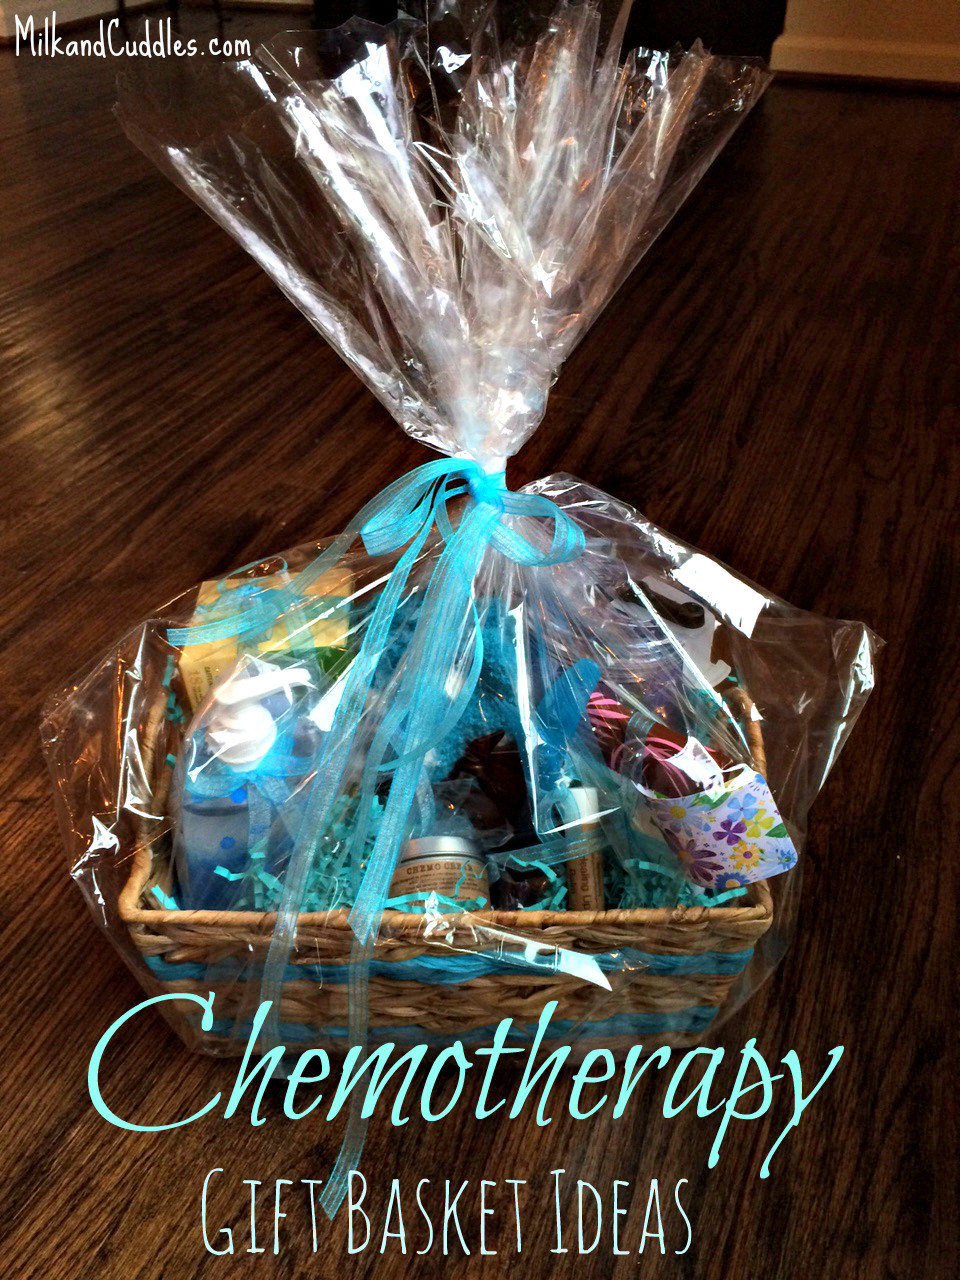 Best ideas about Chemo Gift Ideas . Save or Pin Gift Basket Ideas for someone going through Chemo Now.